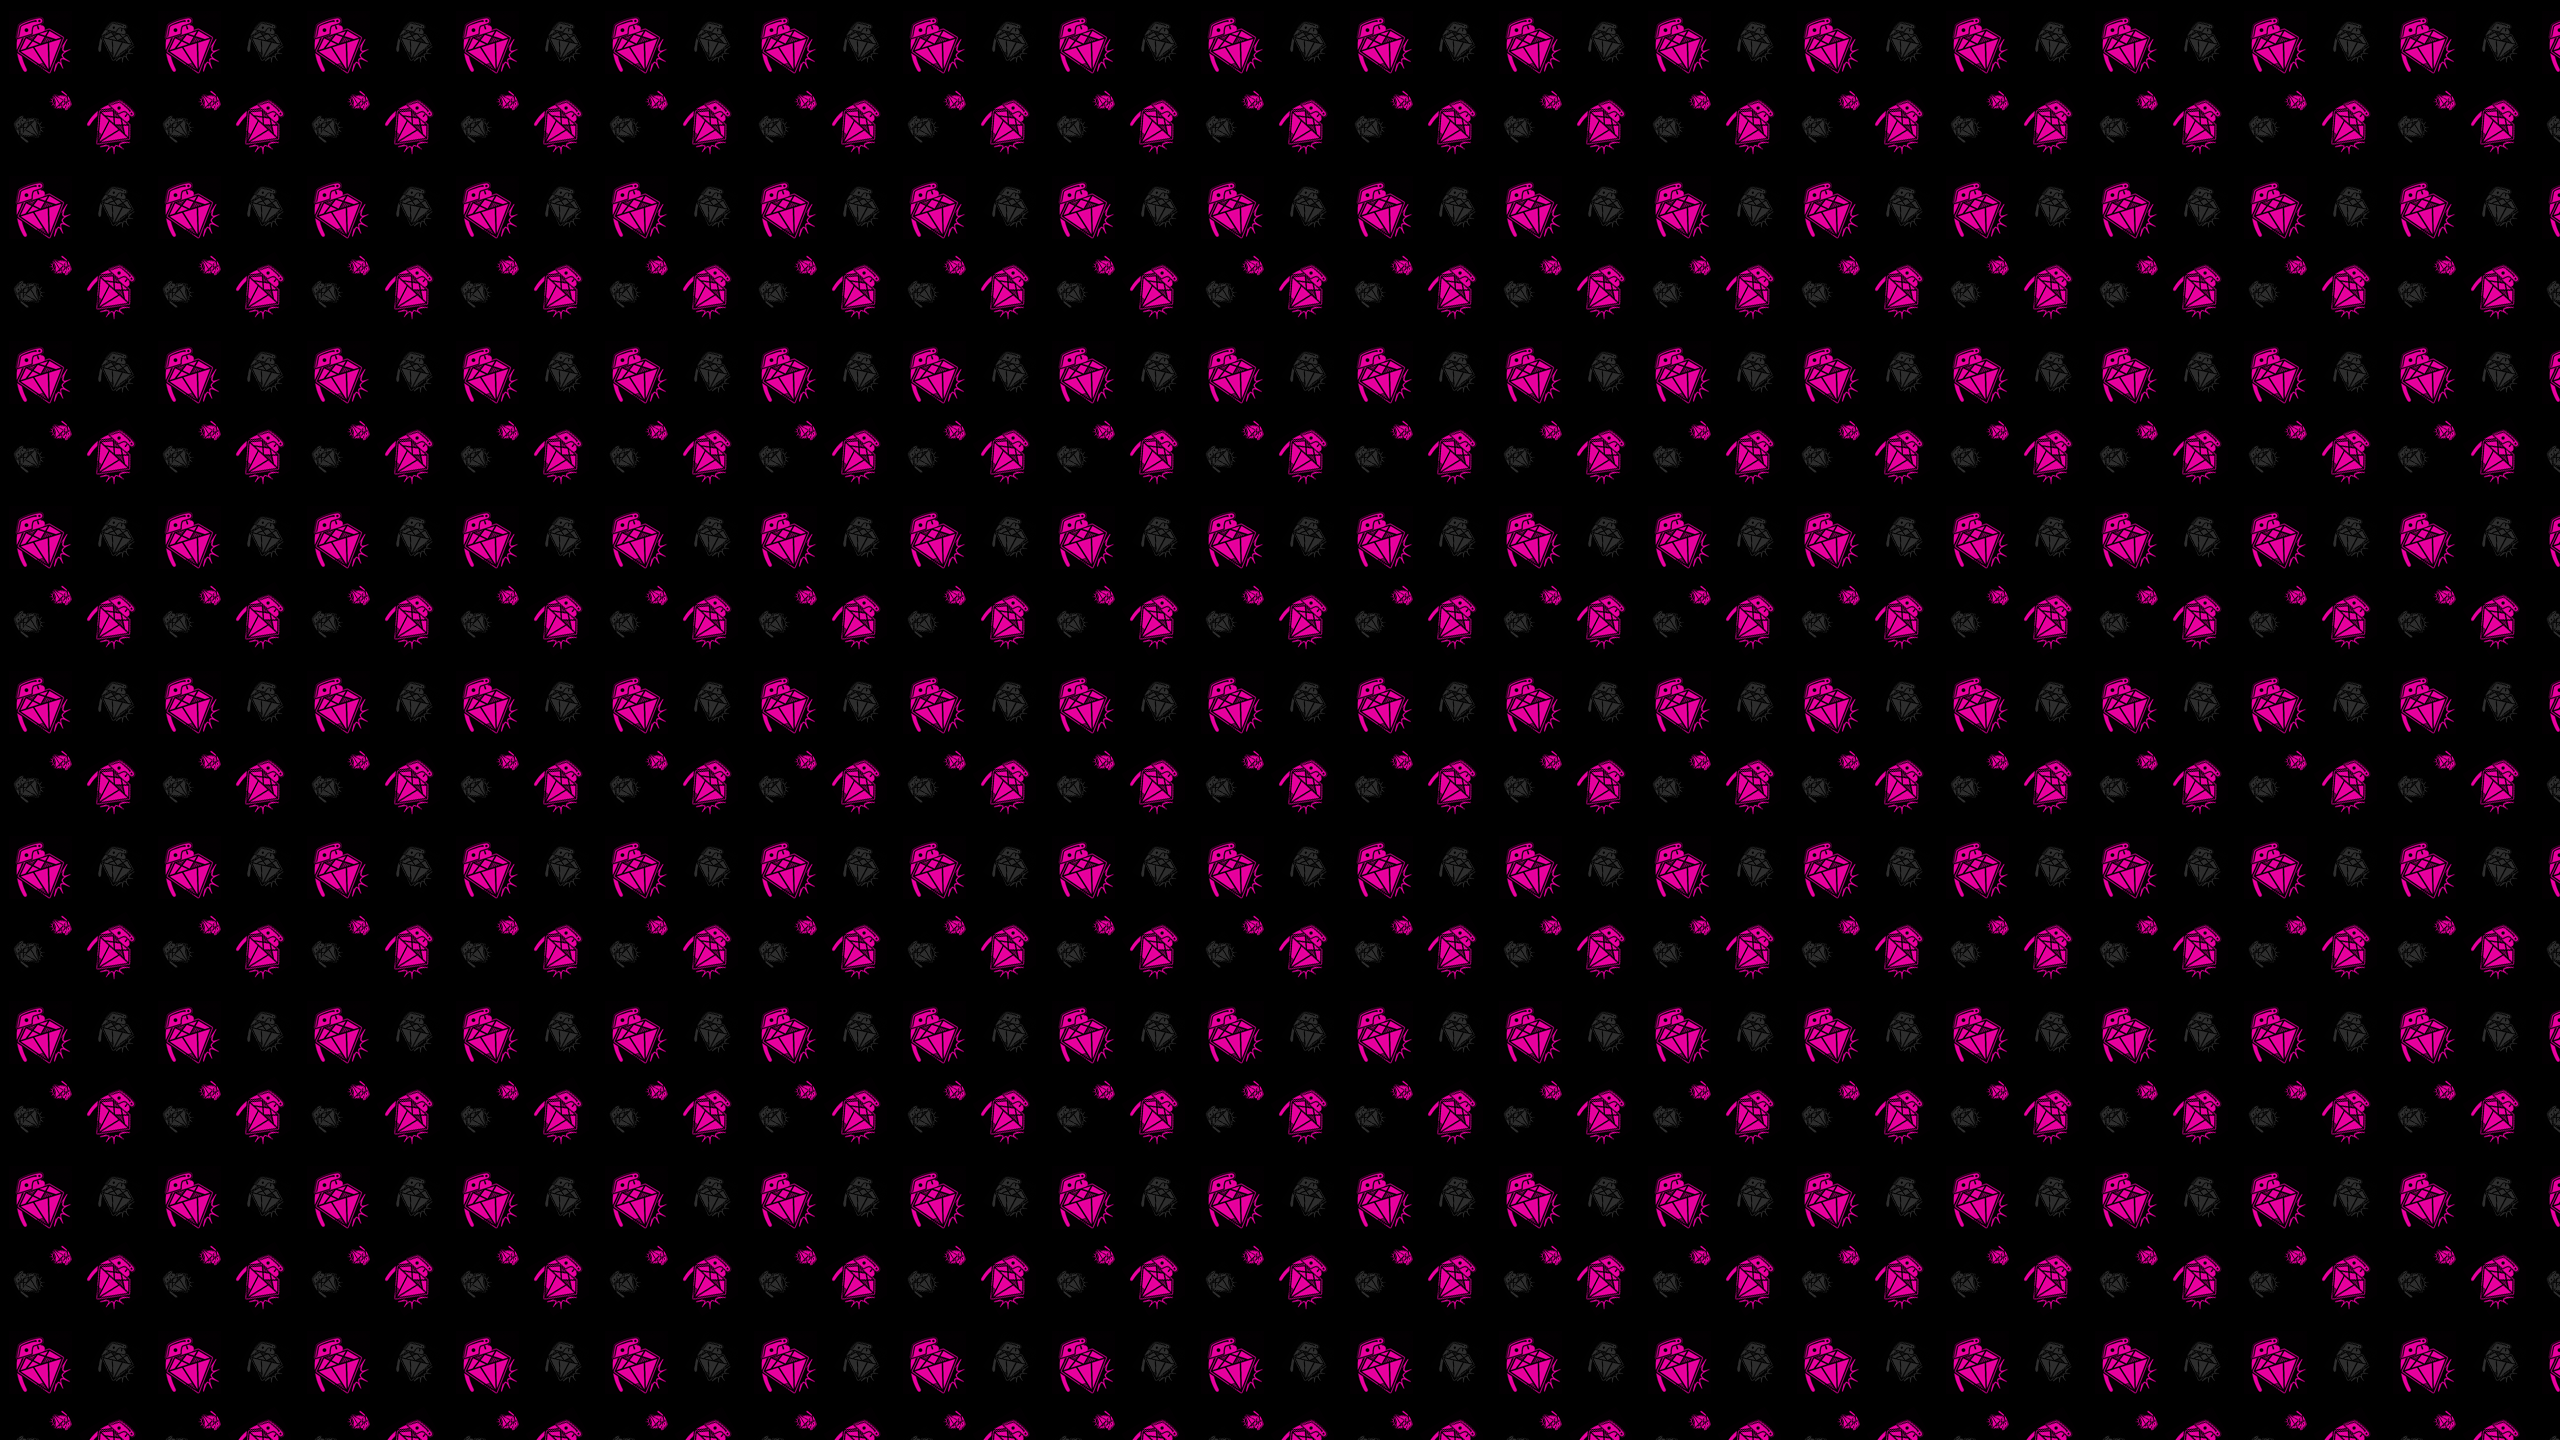 My Wallpaper Place Black Stone Pink Petals Android Wallpaper 2560x1440